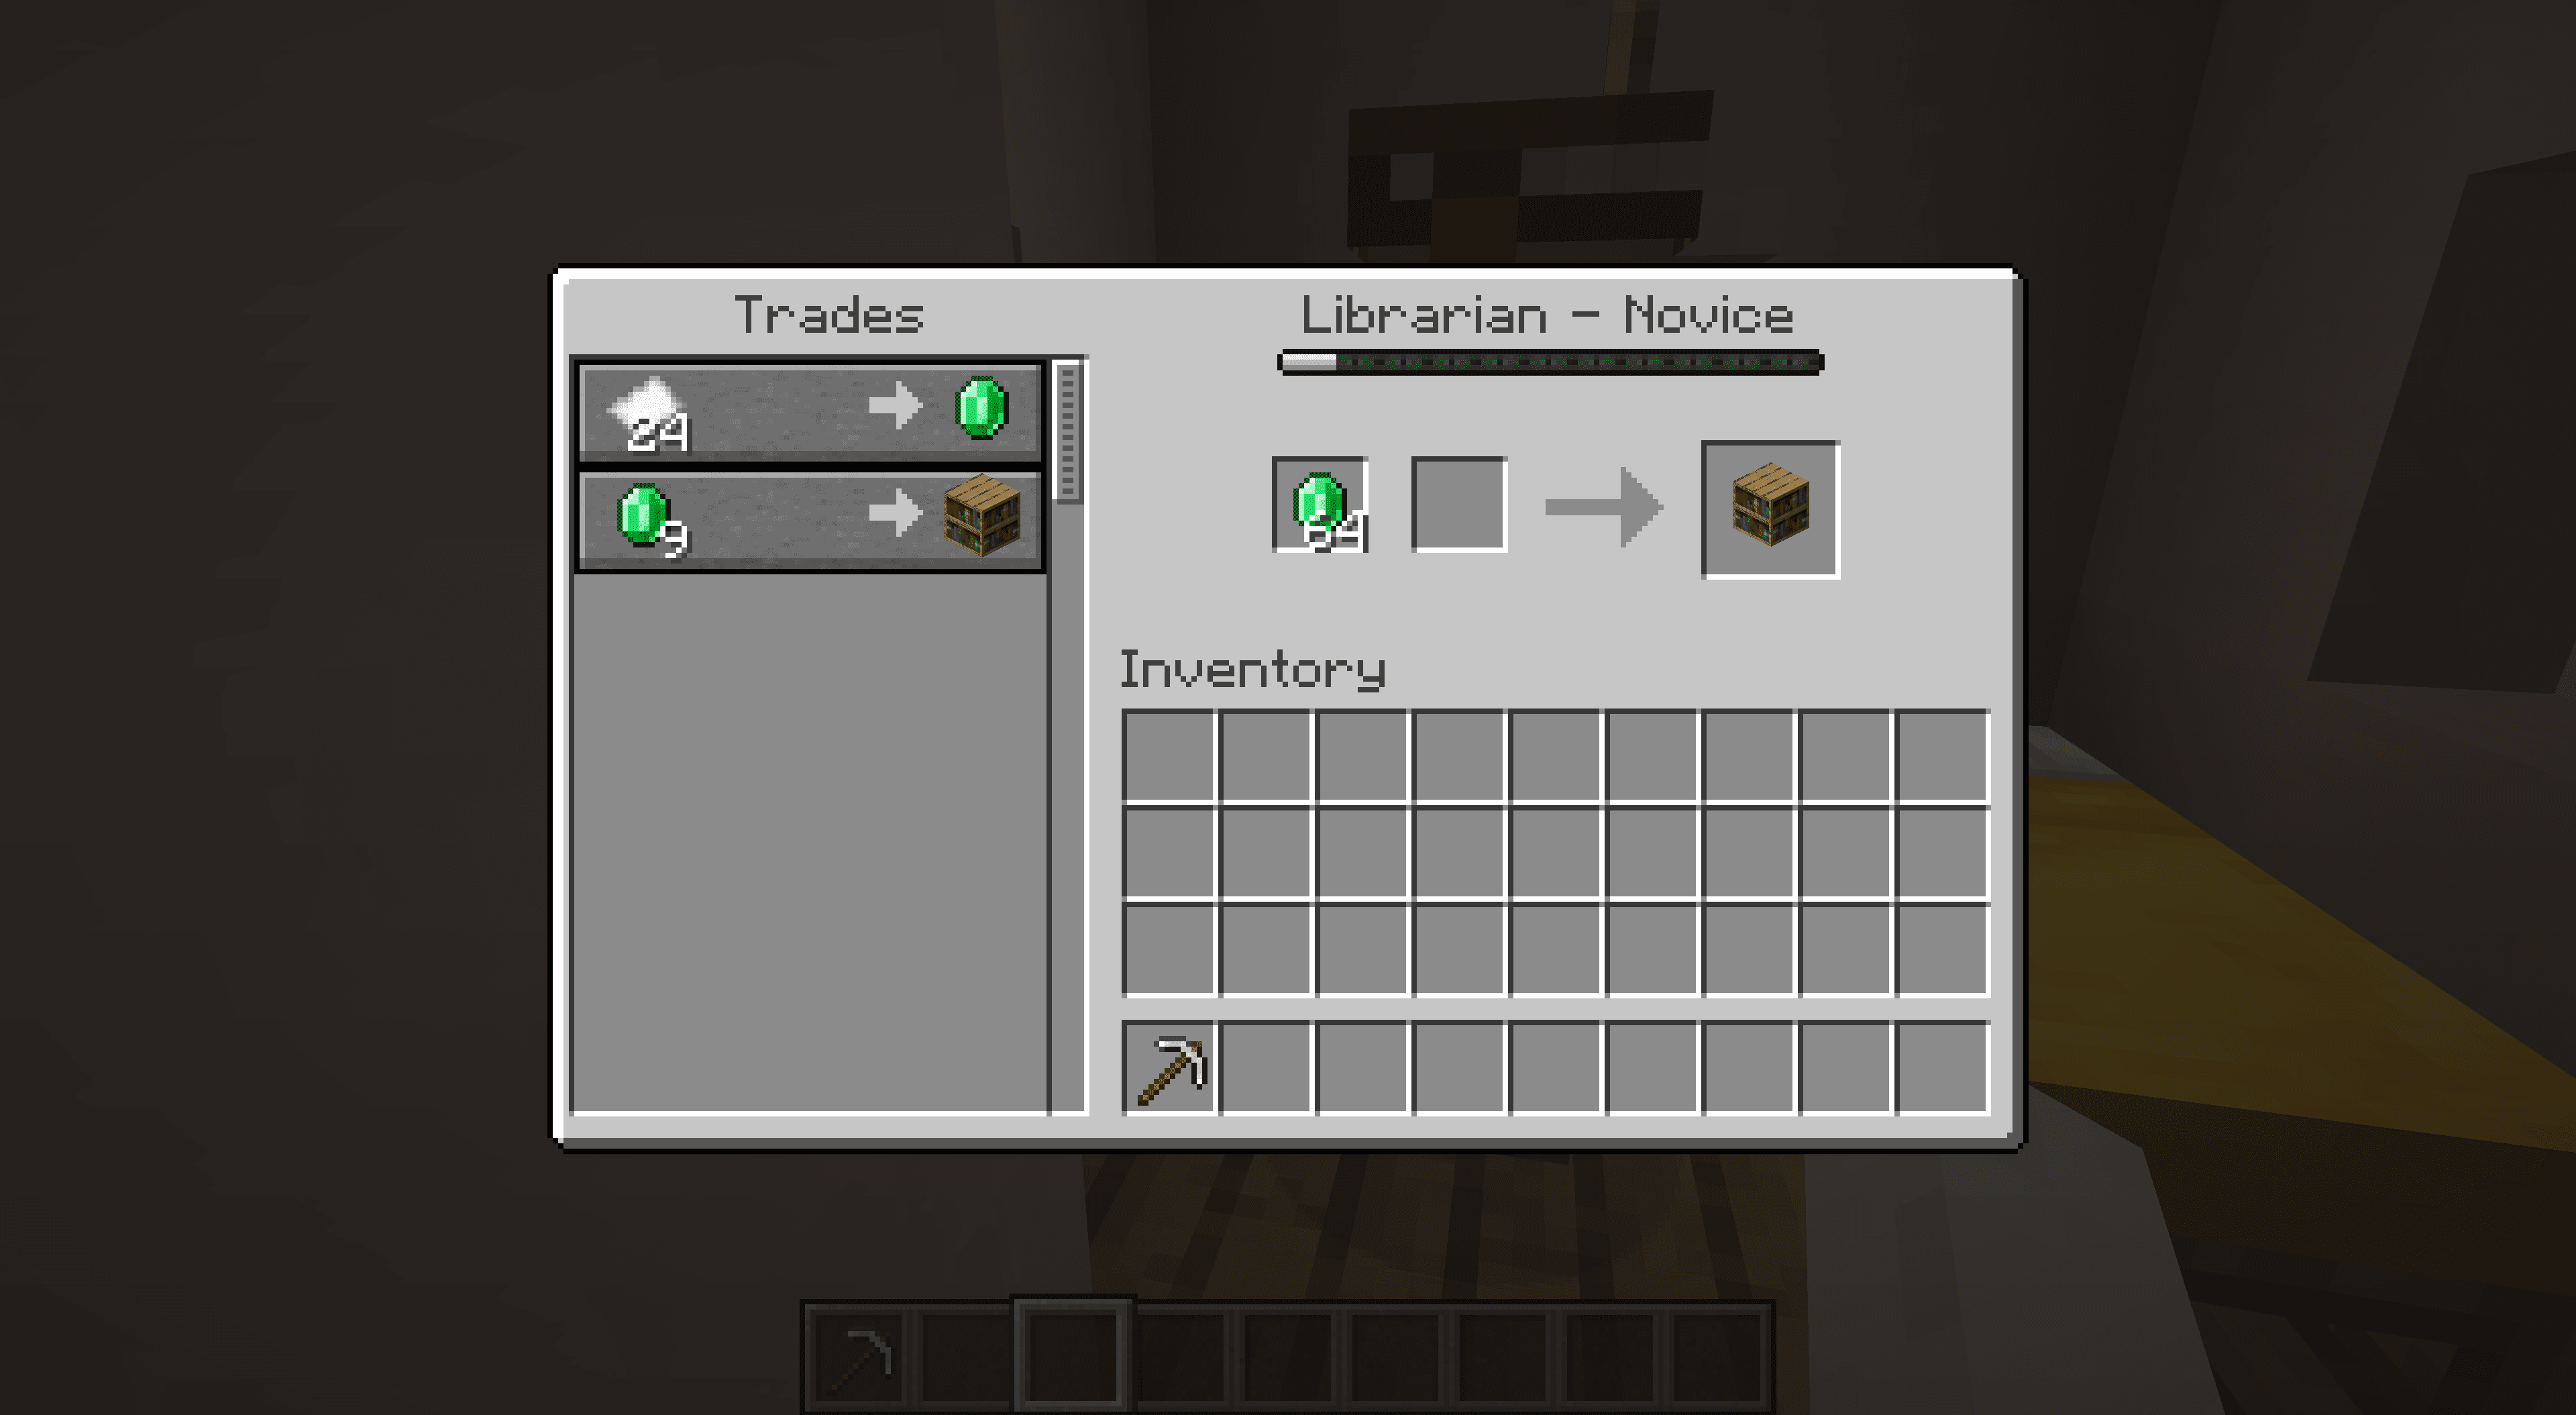 Trading with a librarian villager in Minecraft.